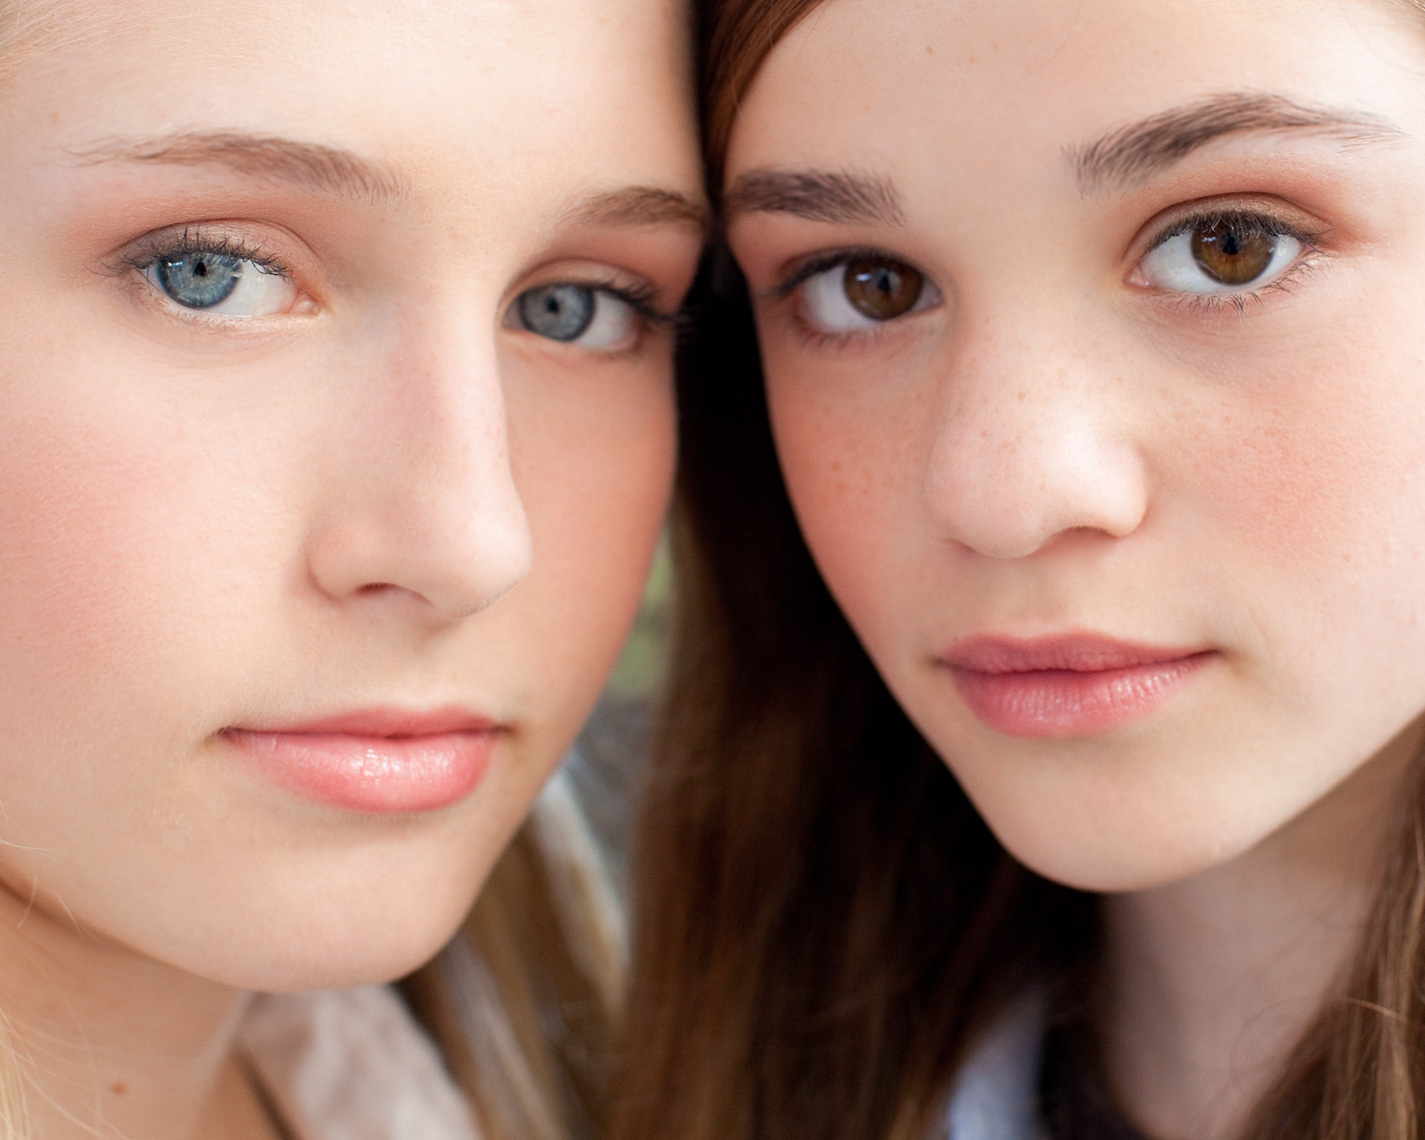 Portrait Of Teen Girls | Tosca Radigonda Photography